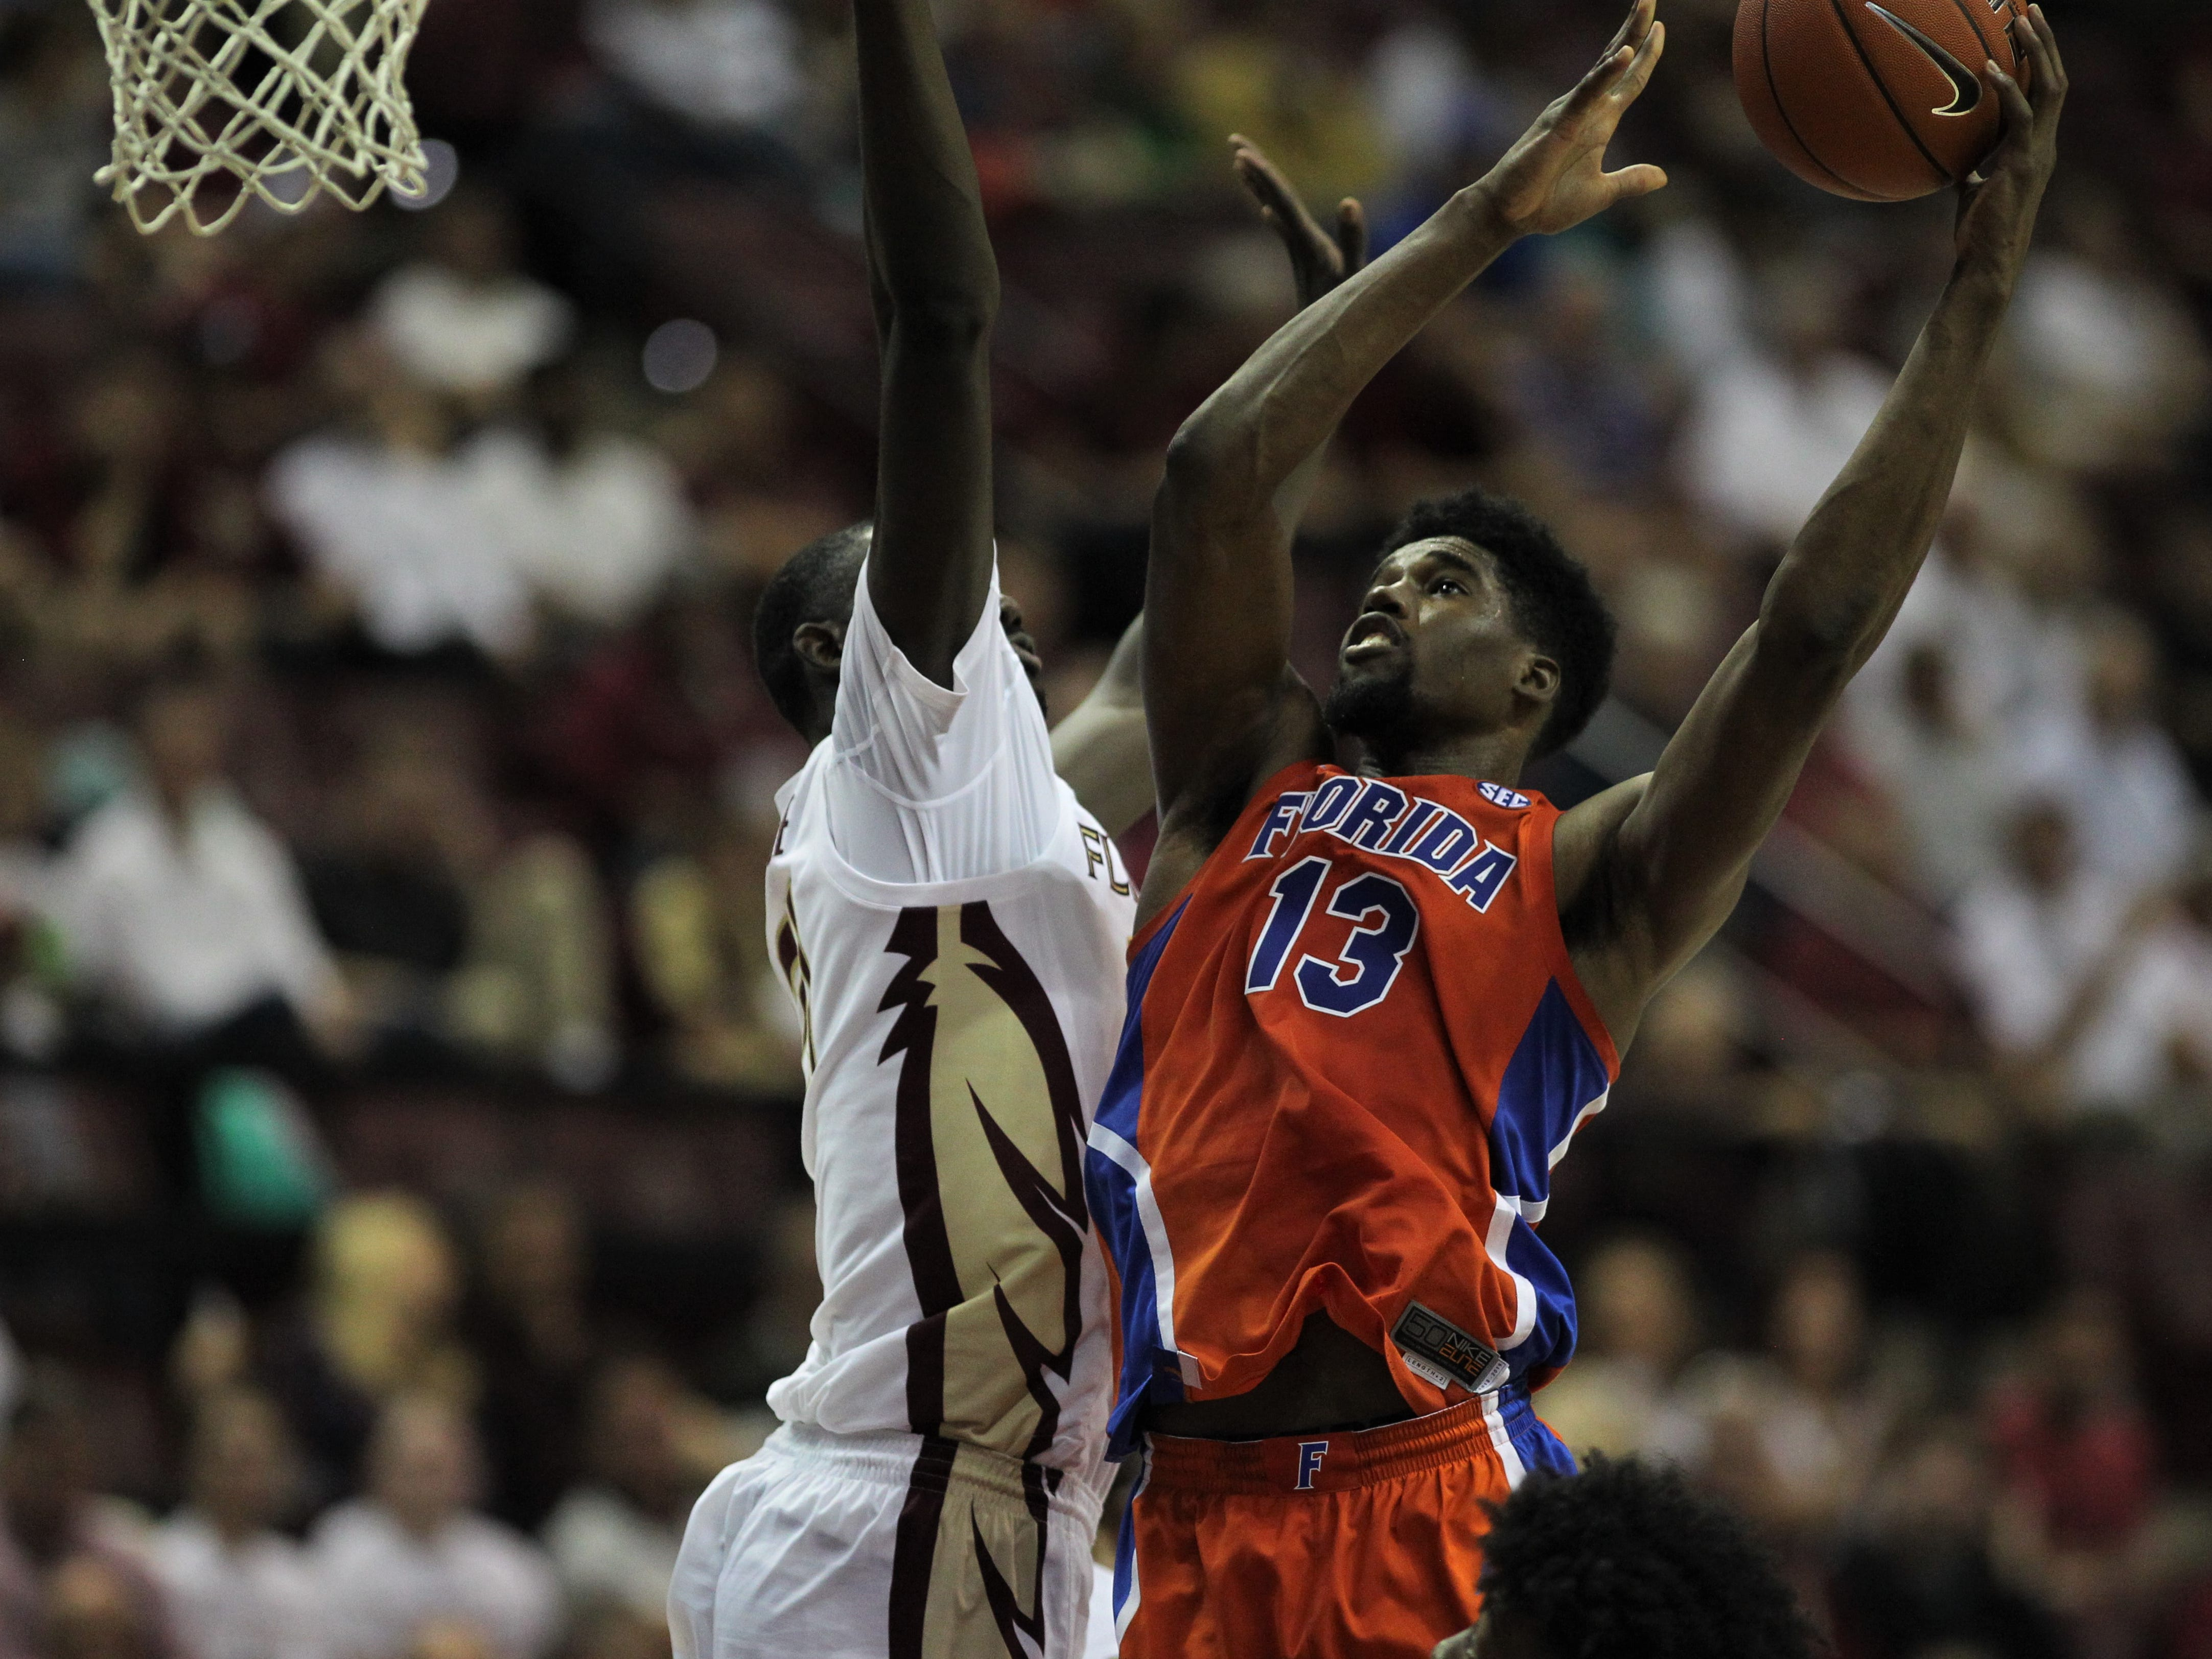 Florida's Kevarrius Hayes goes up for a contested layup by FSU's Christ Koumadje during the Sunshine Showdown game Tuesday at the Tucker Civic Center.